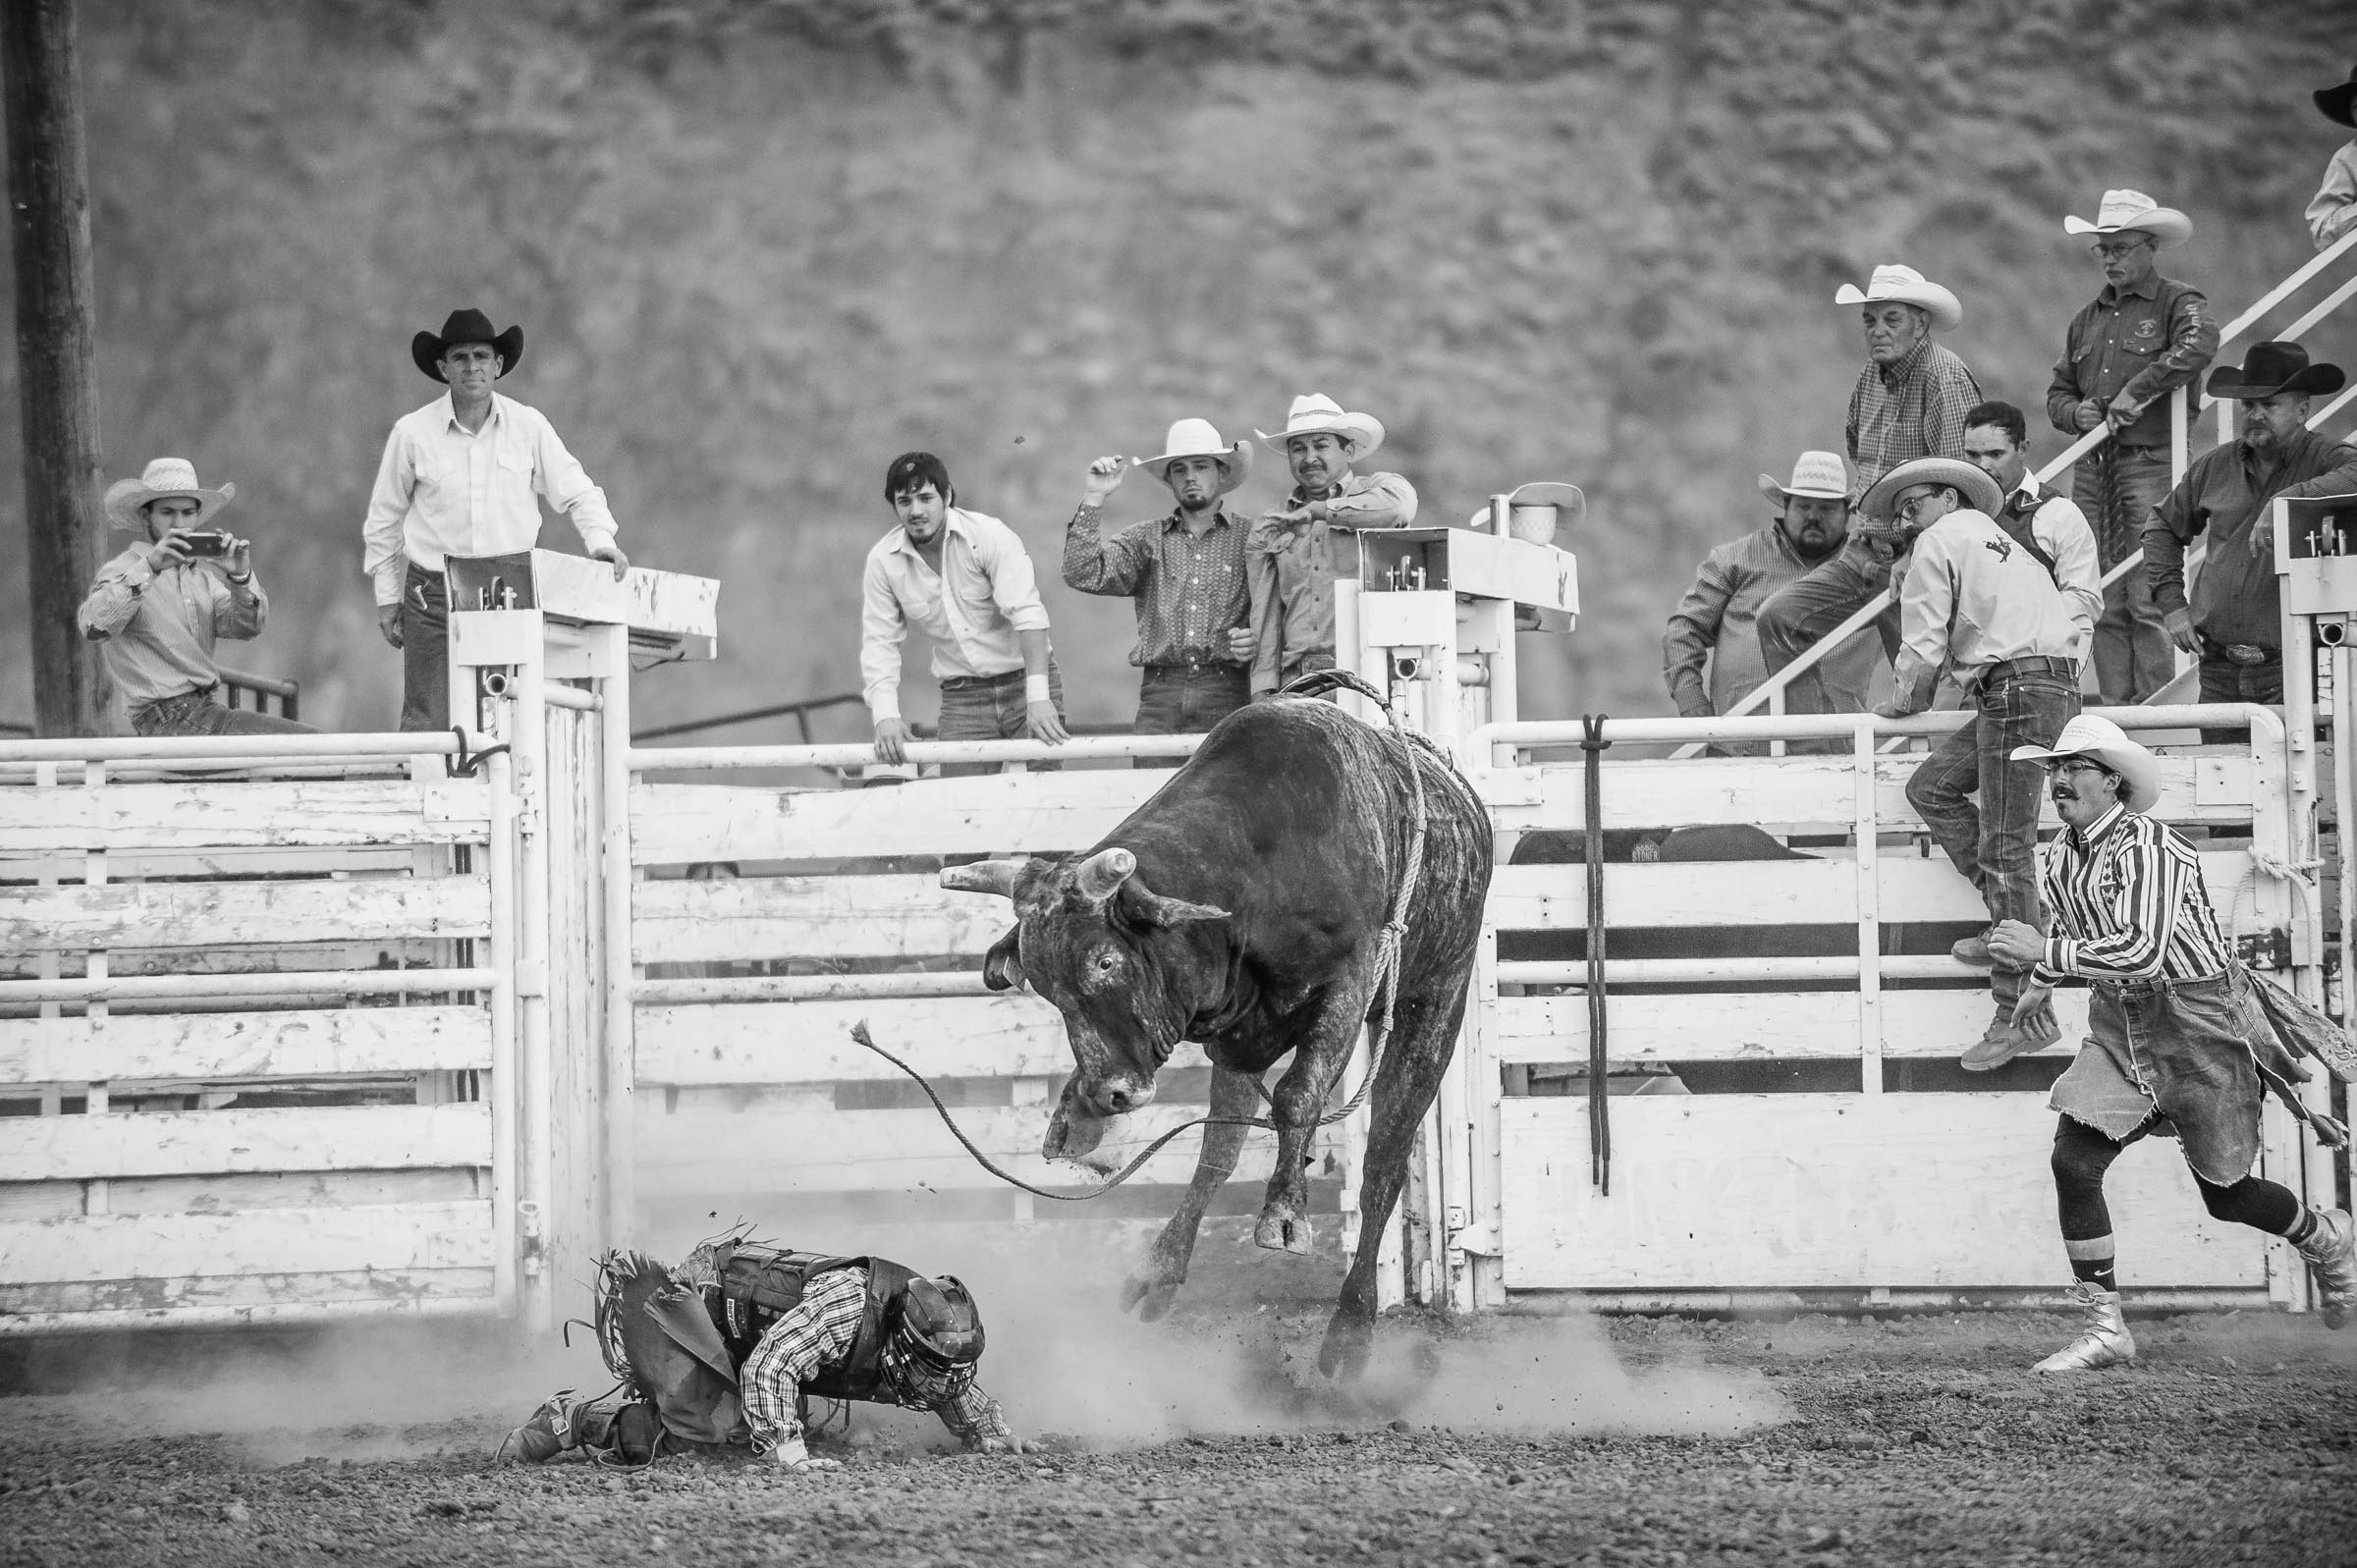 rodeo_whisky-bent_bynum-2622.JPG